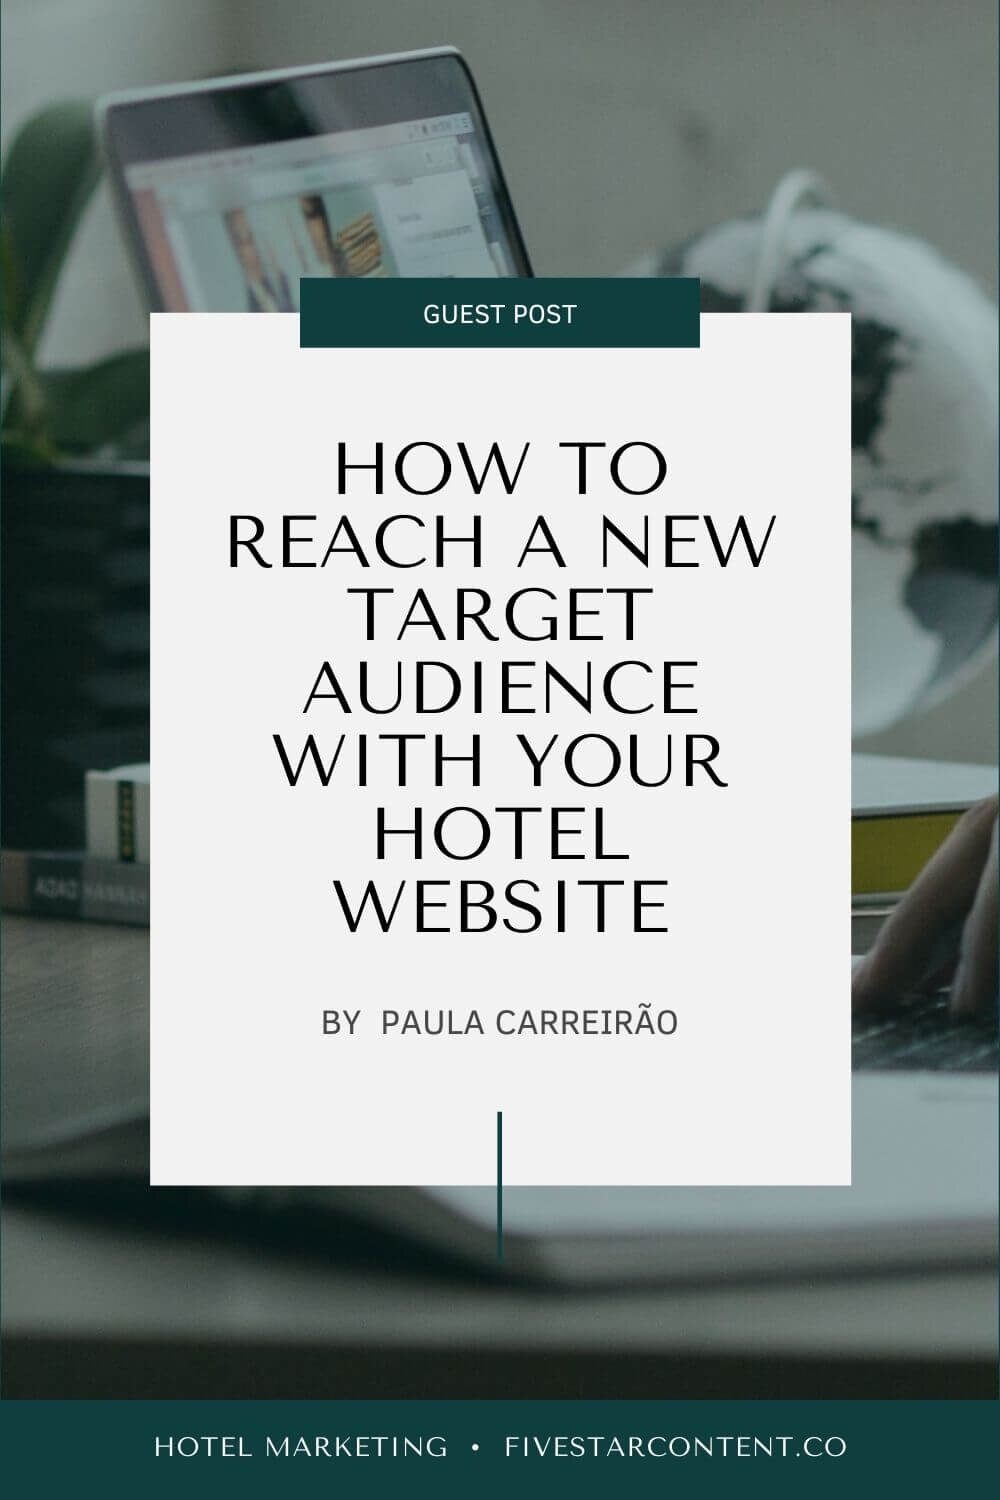 International content marketer Paula Carreirão shares her tips for reaching a new target audience with your hotel website.